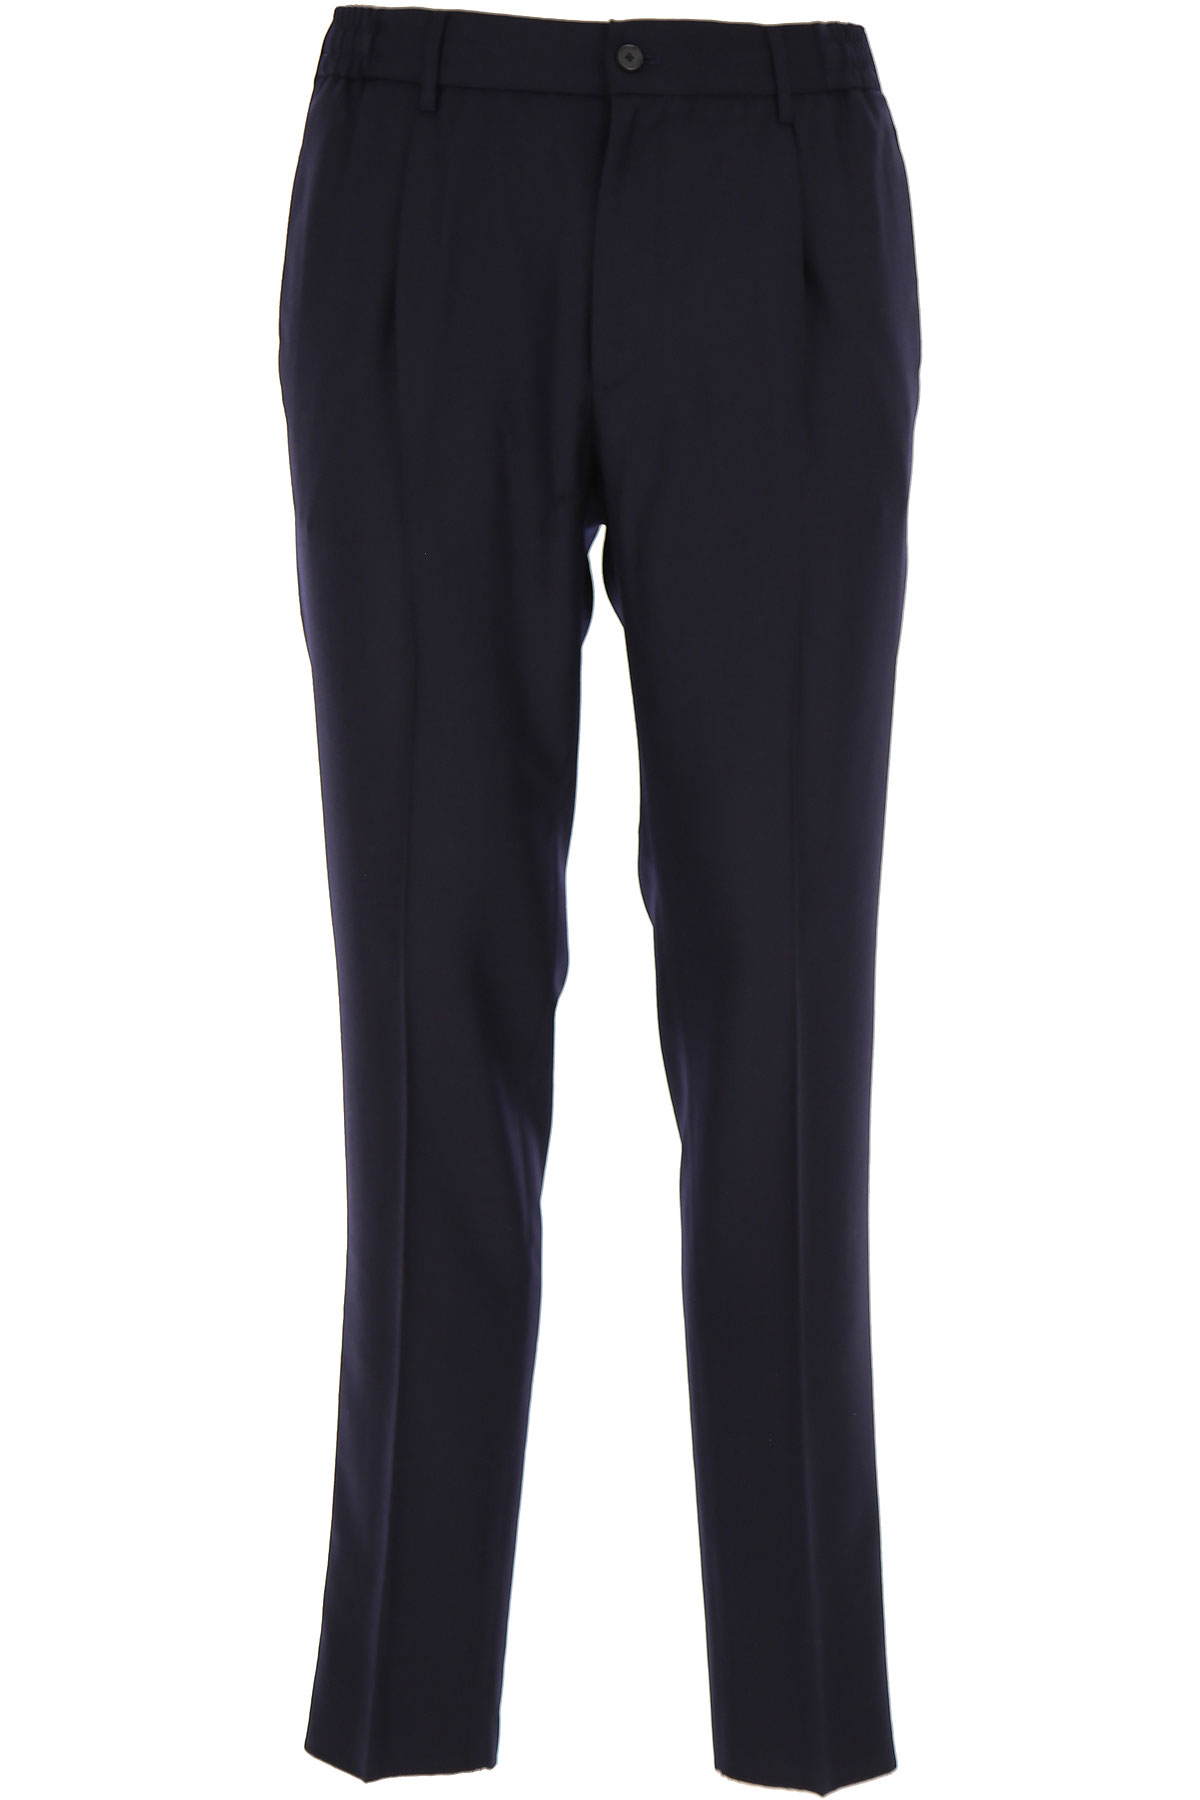 Tagliatore Pants for Men, Blue, acetate, 2019, 30 32 34 36